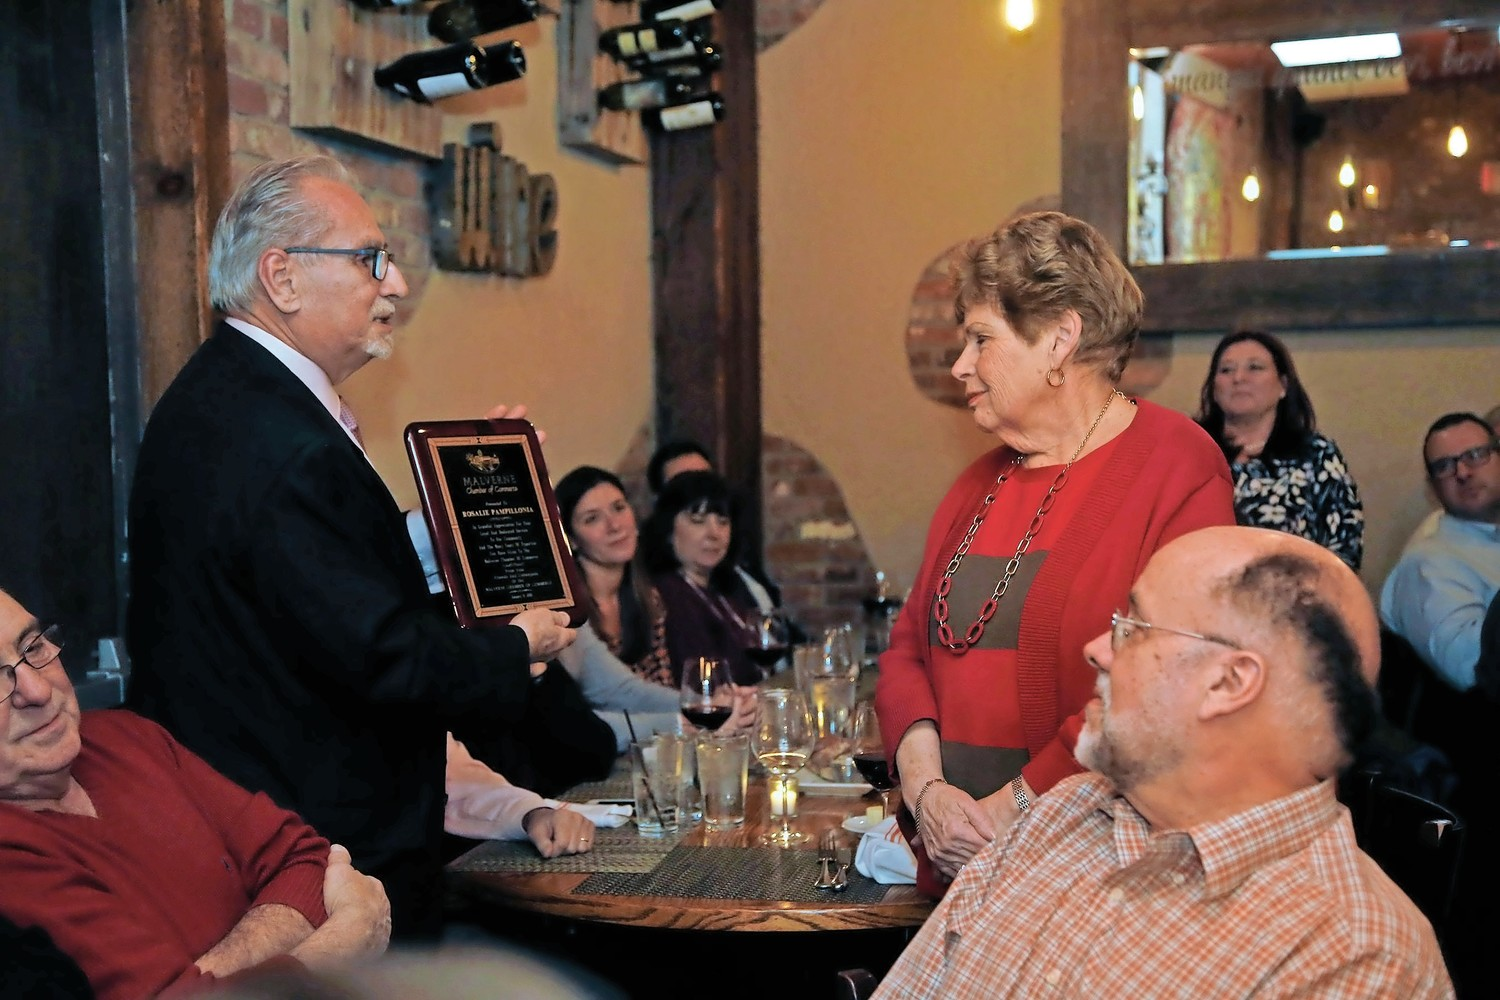 Members of the chamber listened as Chamber Trustee Jack Sorrentino honored Rosalie Pampillonia.